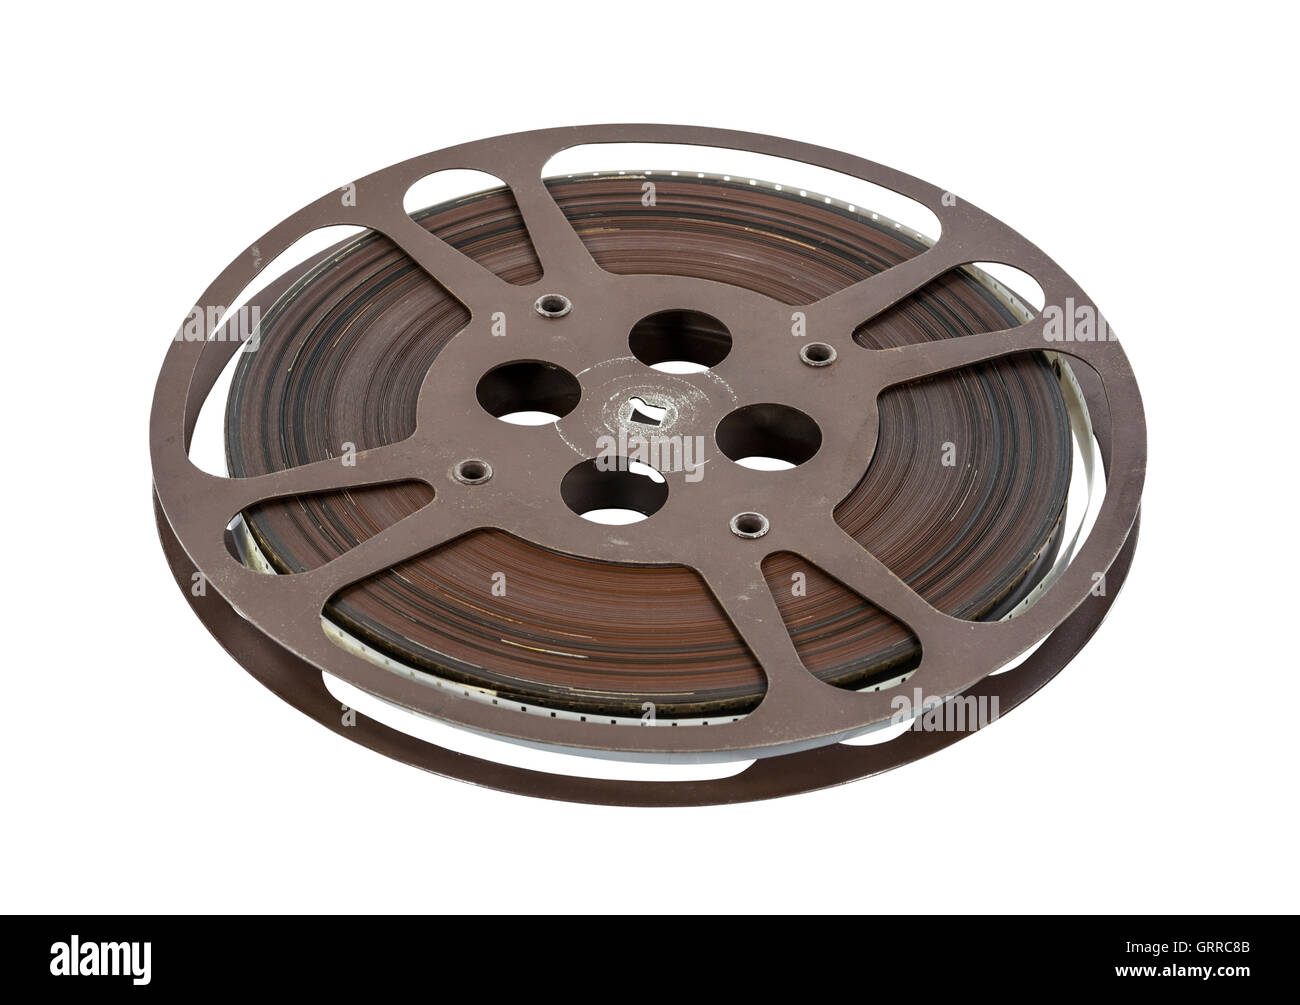 Old 16 mm movie film reel isolated on white. - Stock Image